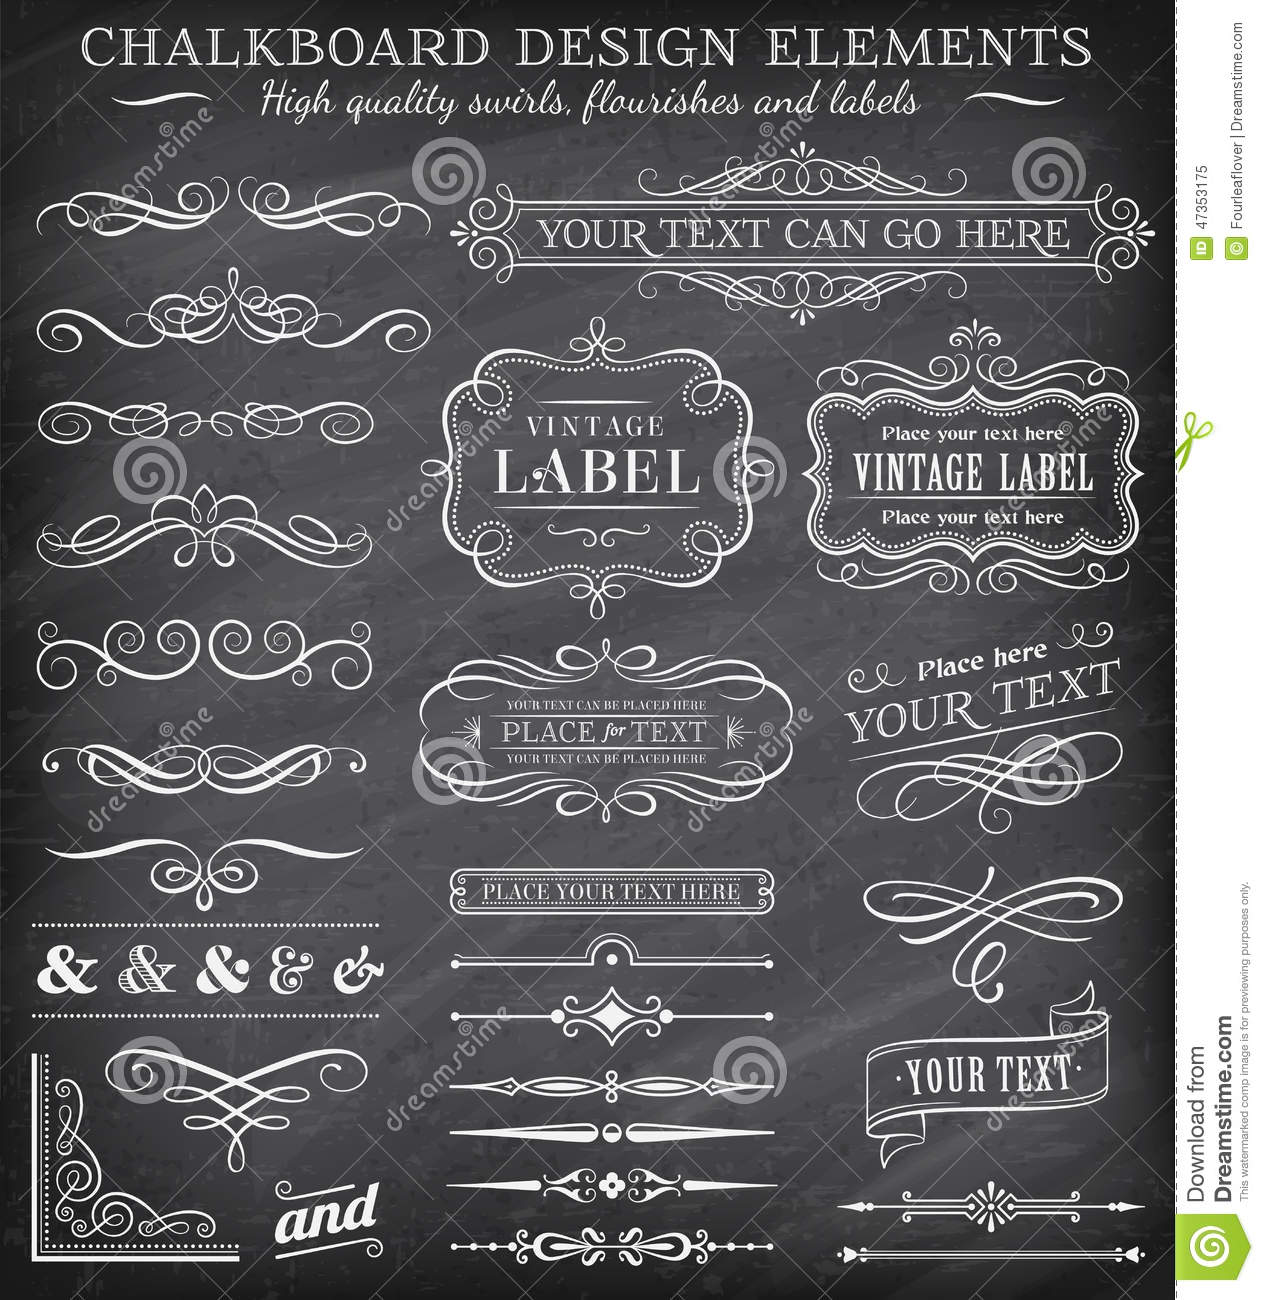 Download free vintage ornaments vintage ornaments and iders - Royalty Free Illustration Download Vector Vintage Chalkboard Labels And Ornaments